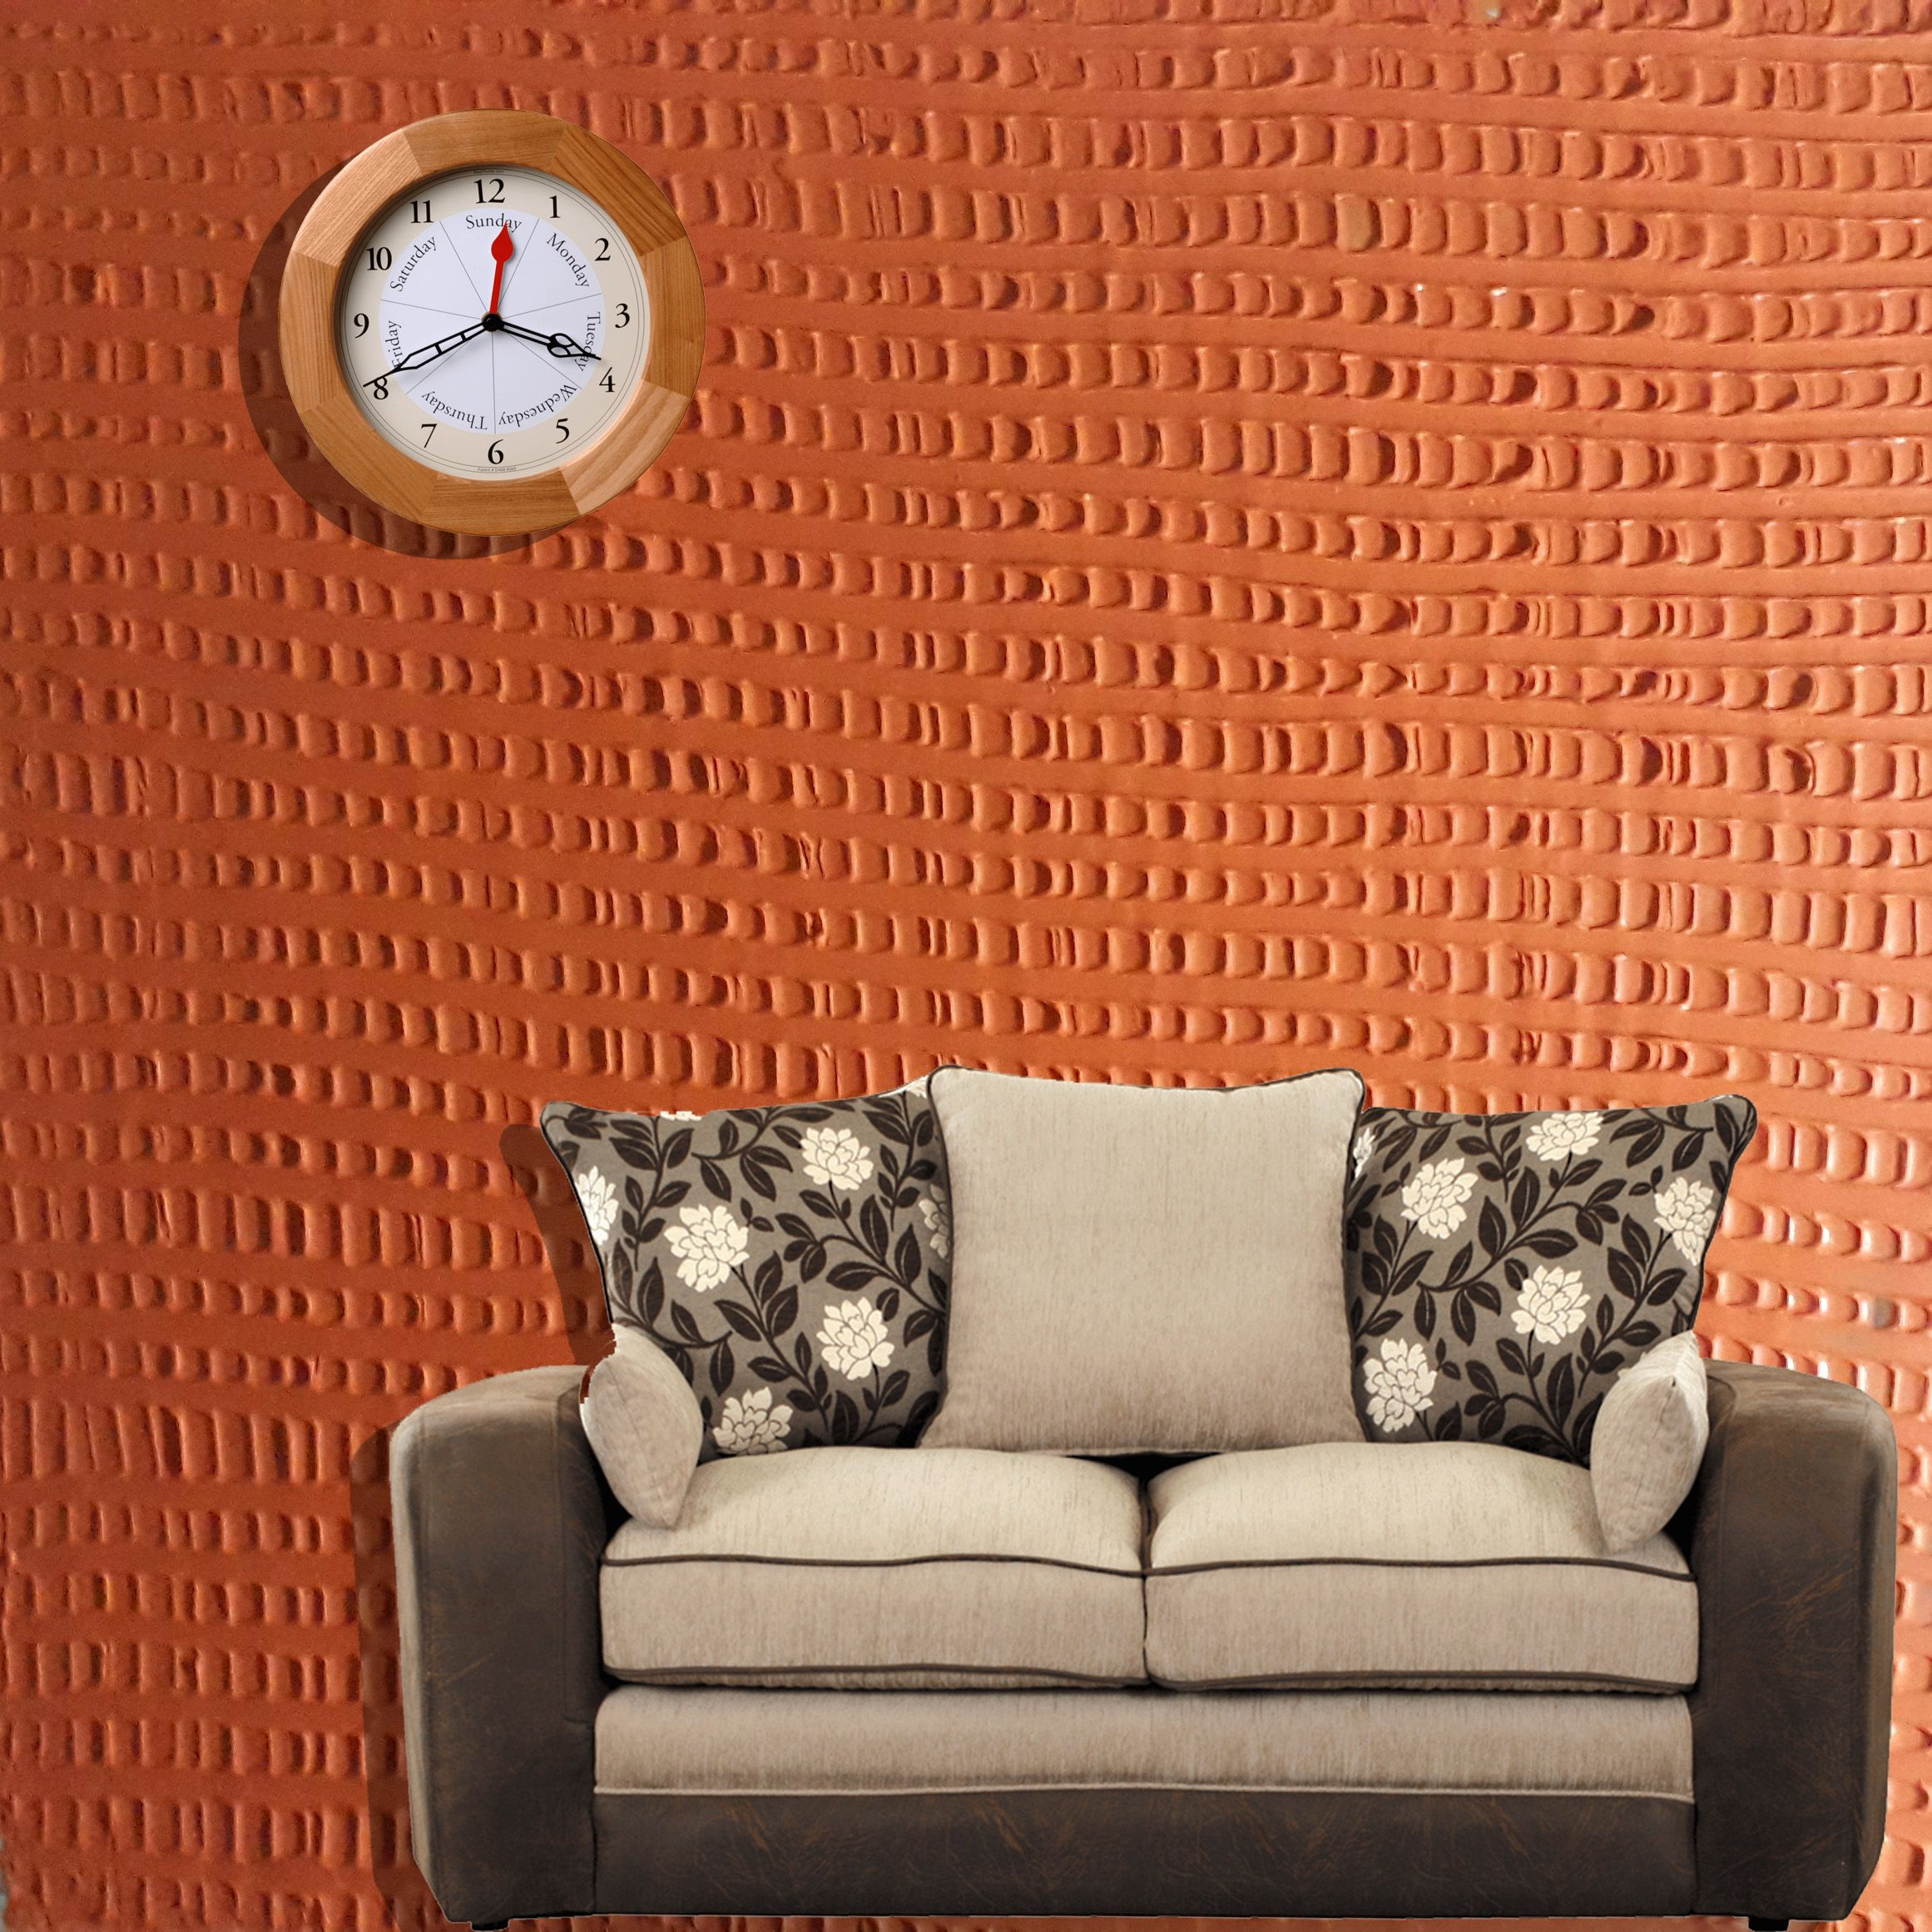 Decorative Texture On Dry Wall Textured Wall Wall Texture Design Wall Painting